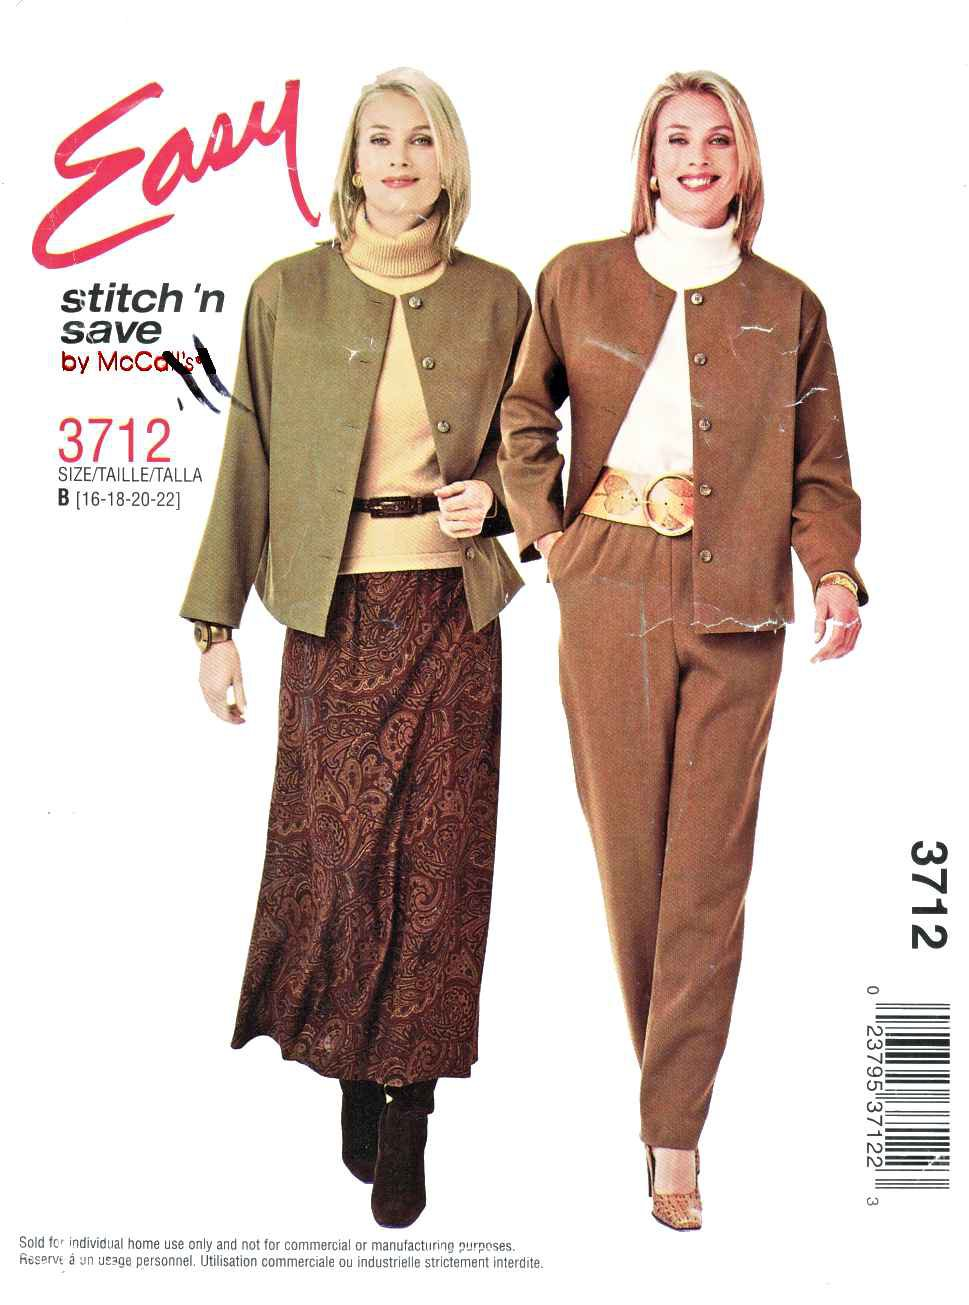 McCall's Sewing Pattern 3712 M3712 Misses Size 16-22 Easy Button Front Jacket Flared Skirt Pants